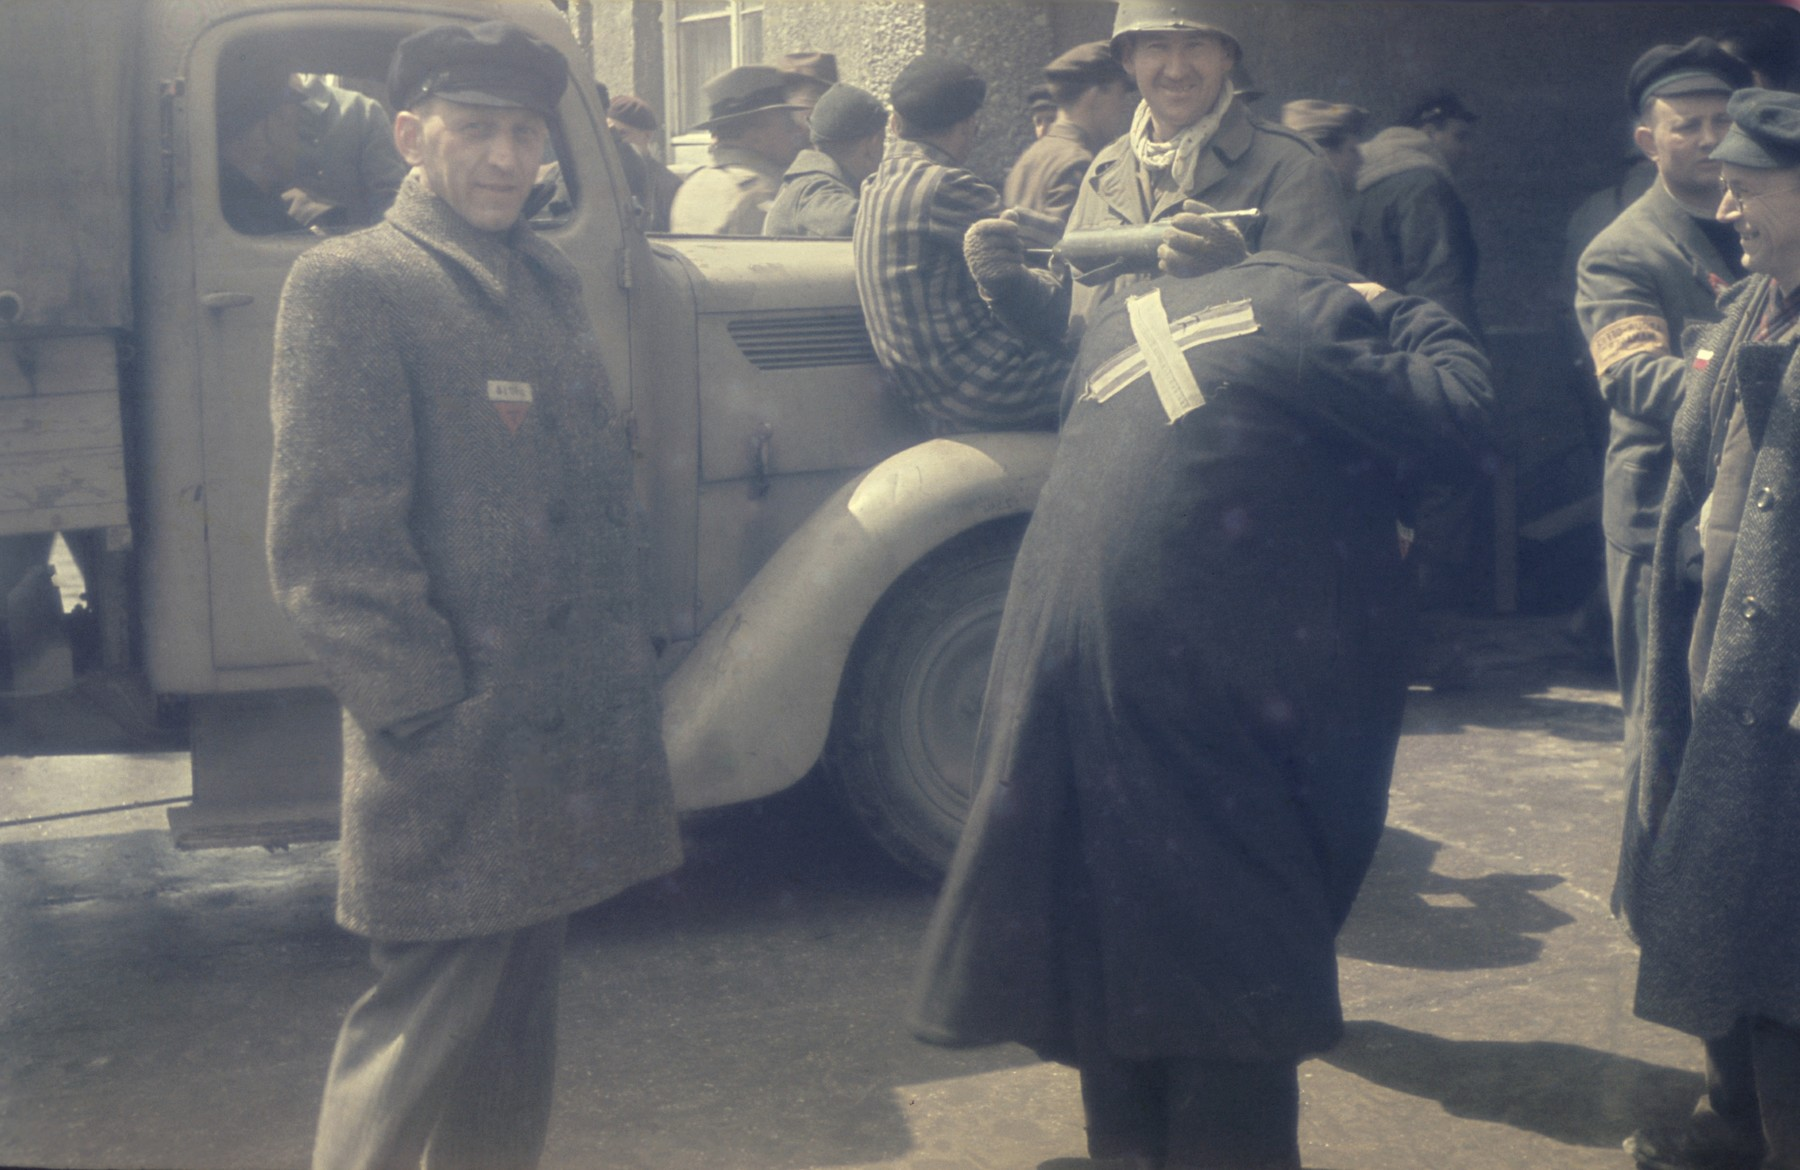 Former prisoners congregate around a truck near the entrance to the newly liberated Dachau concentration camp.